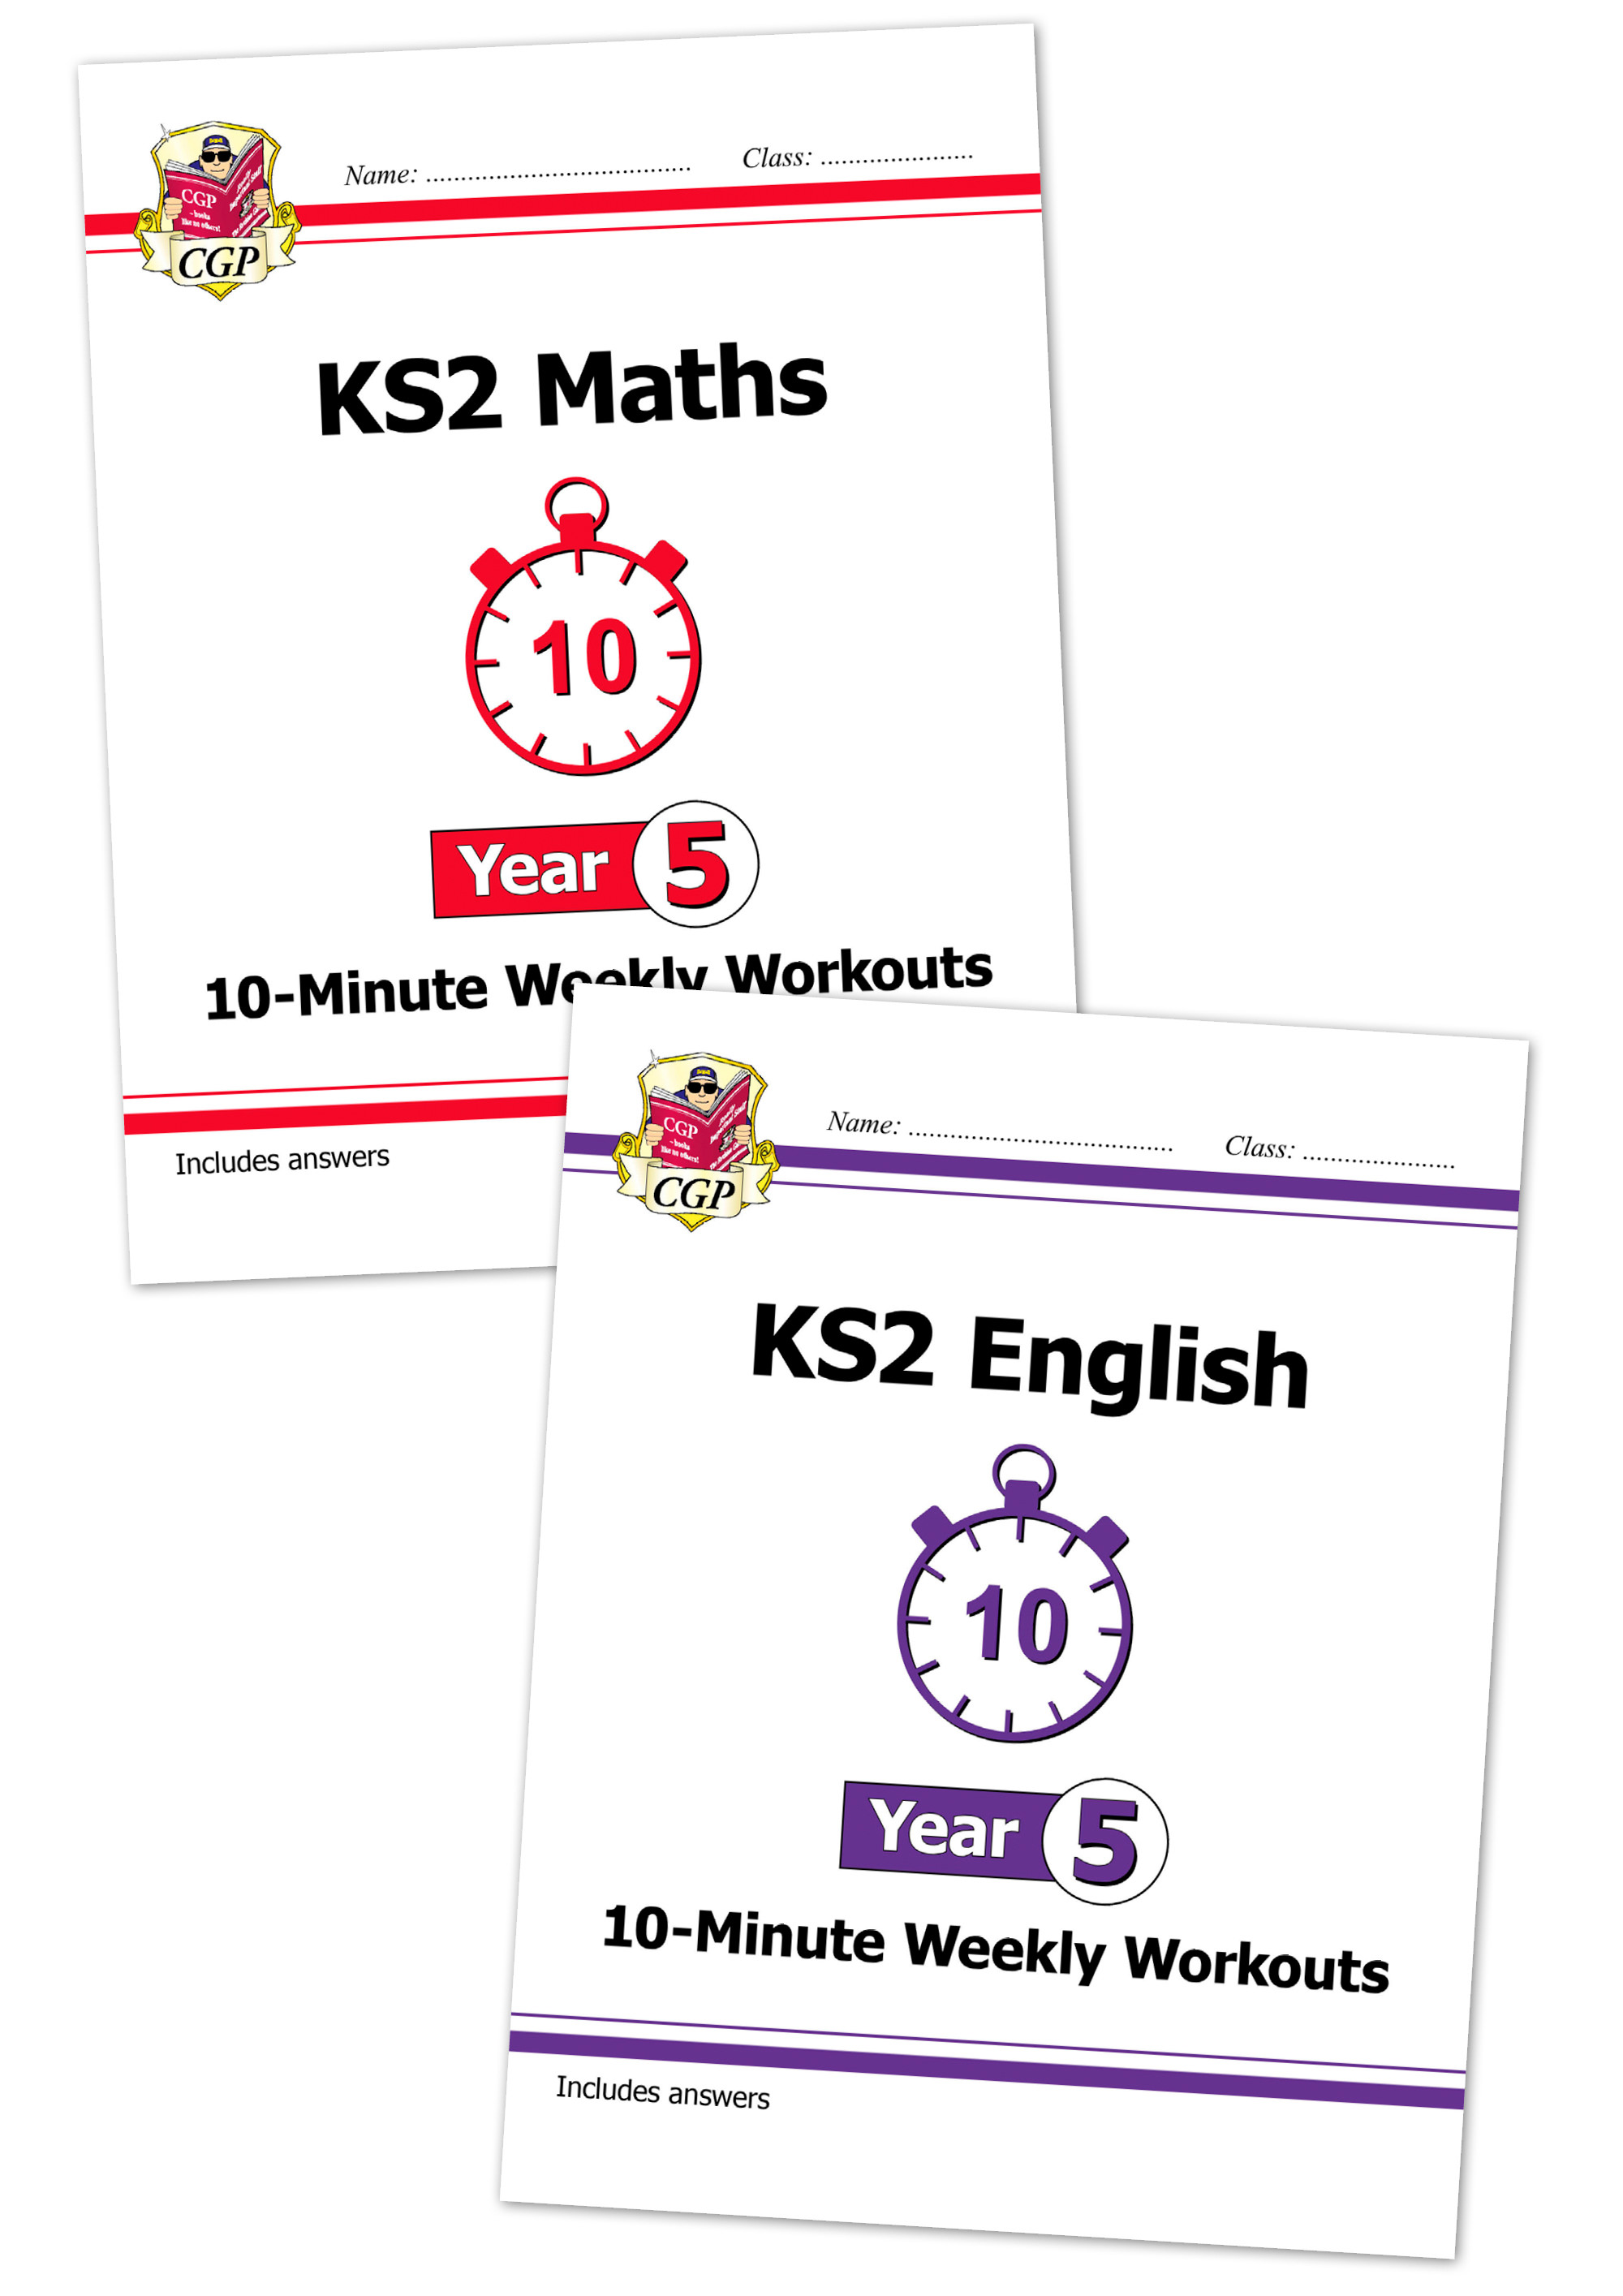 EM5XWB21 - KS2 Maths and English 10-Minute Weekly Workouts Bundle - Year 5